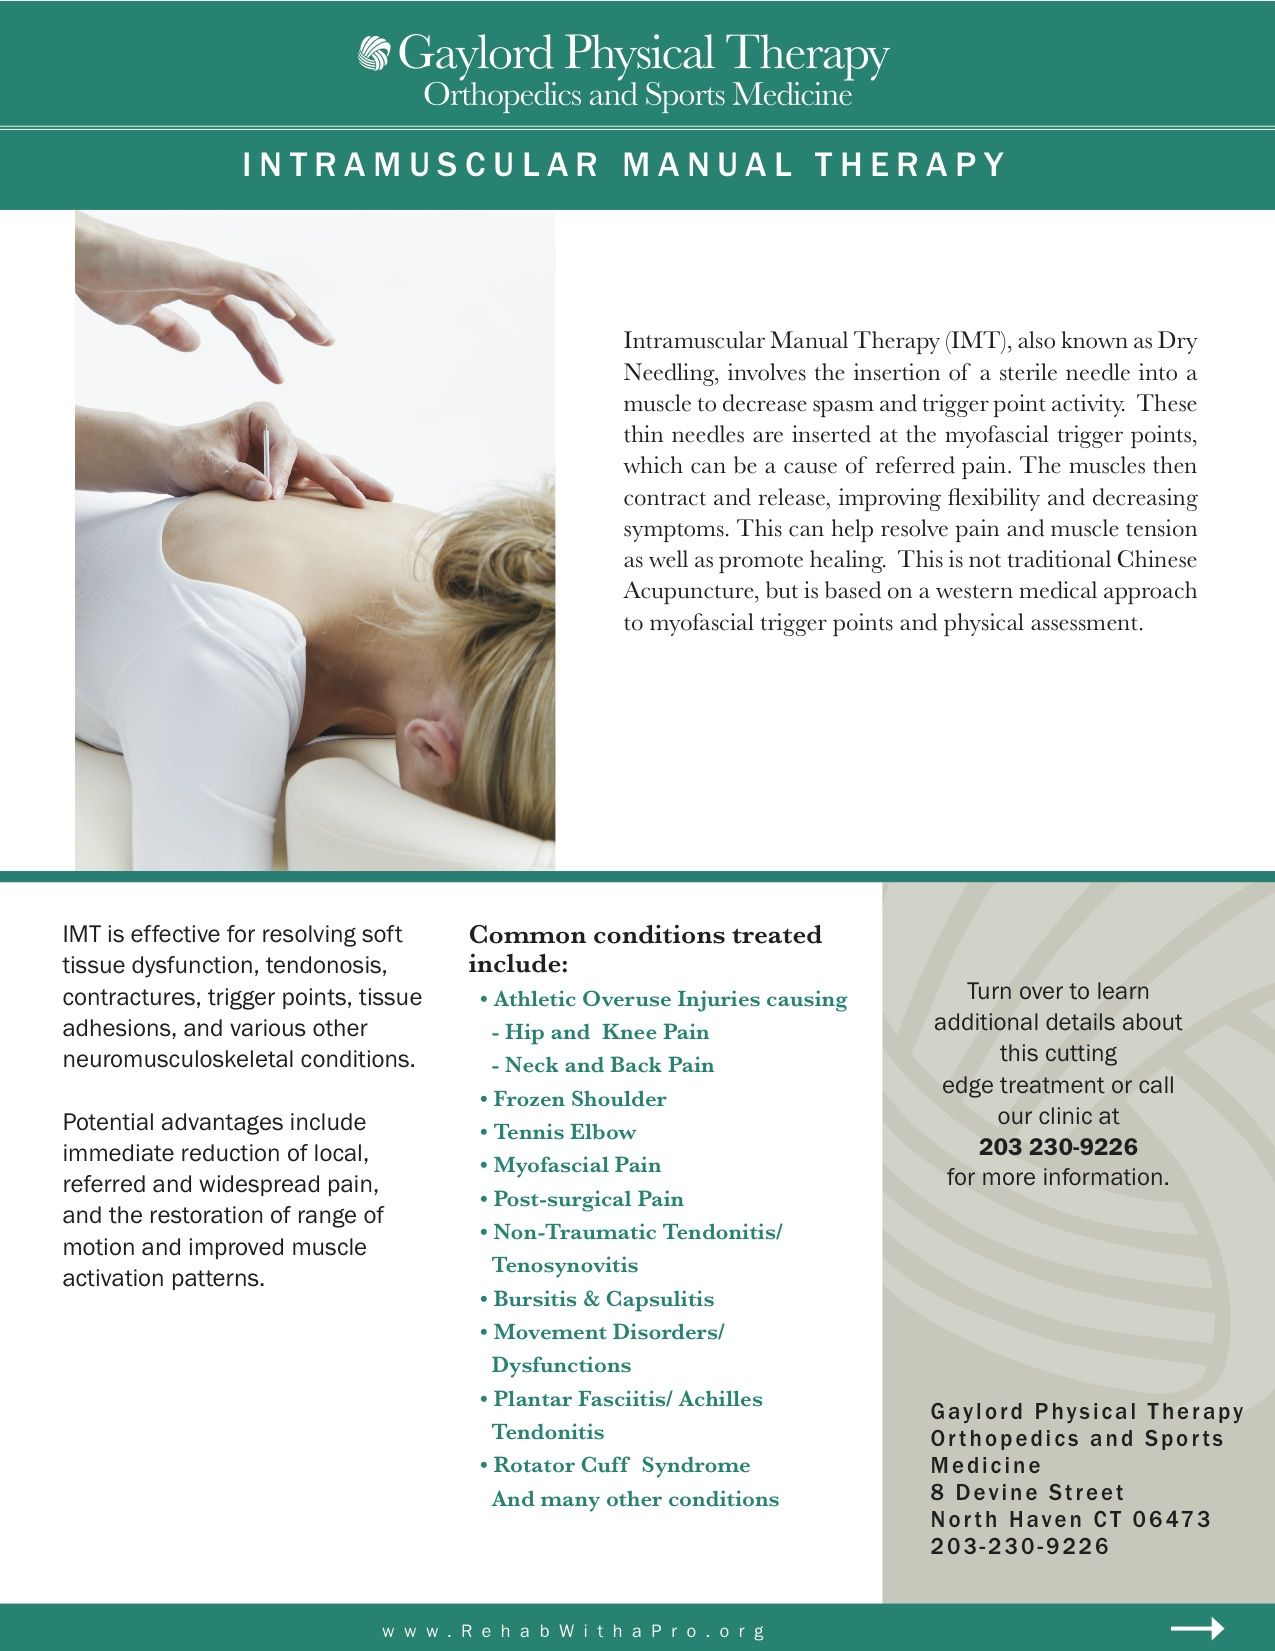 Pin on Gaylord Physical Therapy Orthopedics and Sports